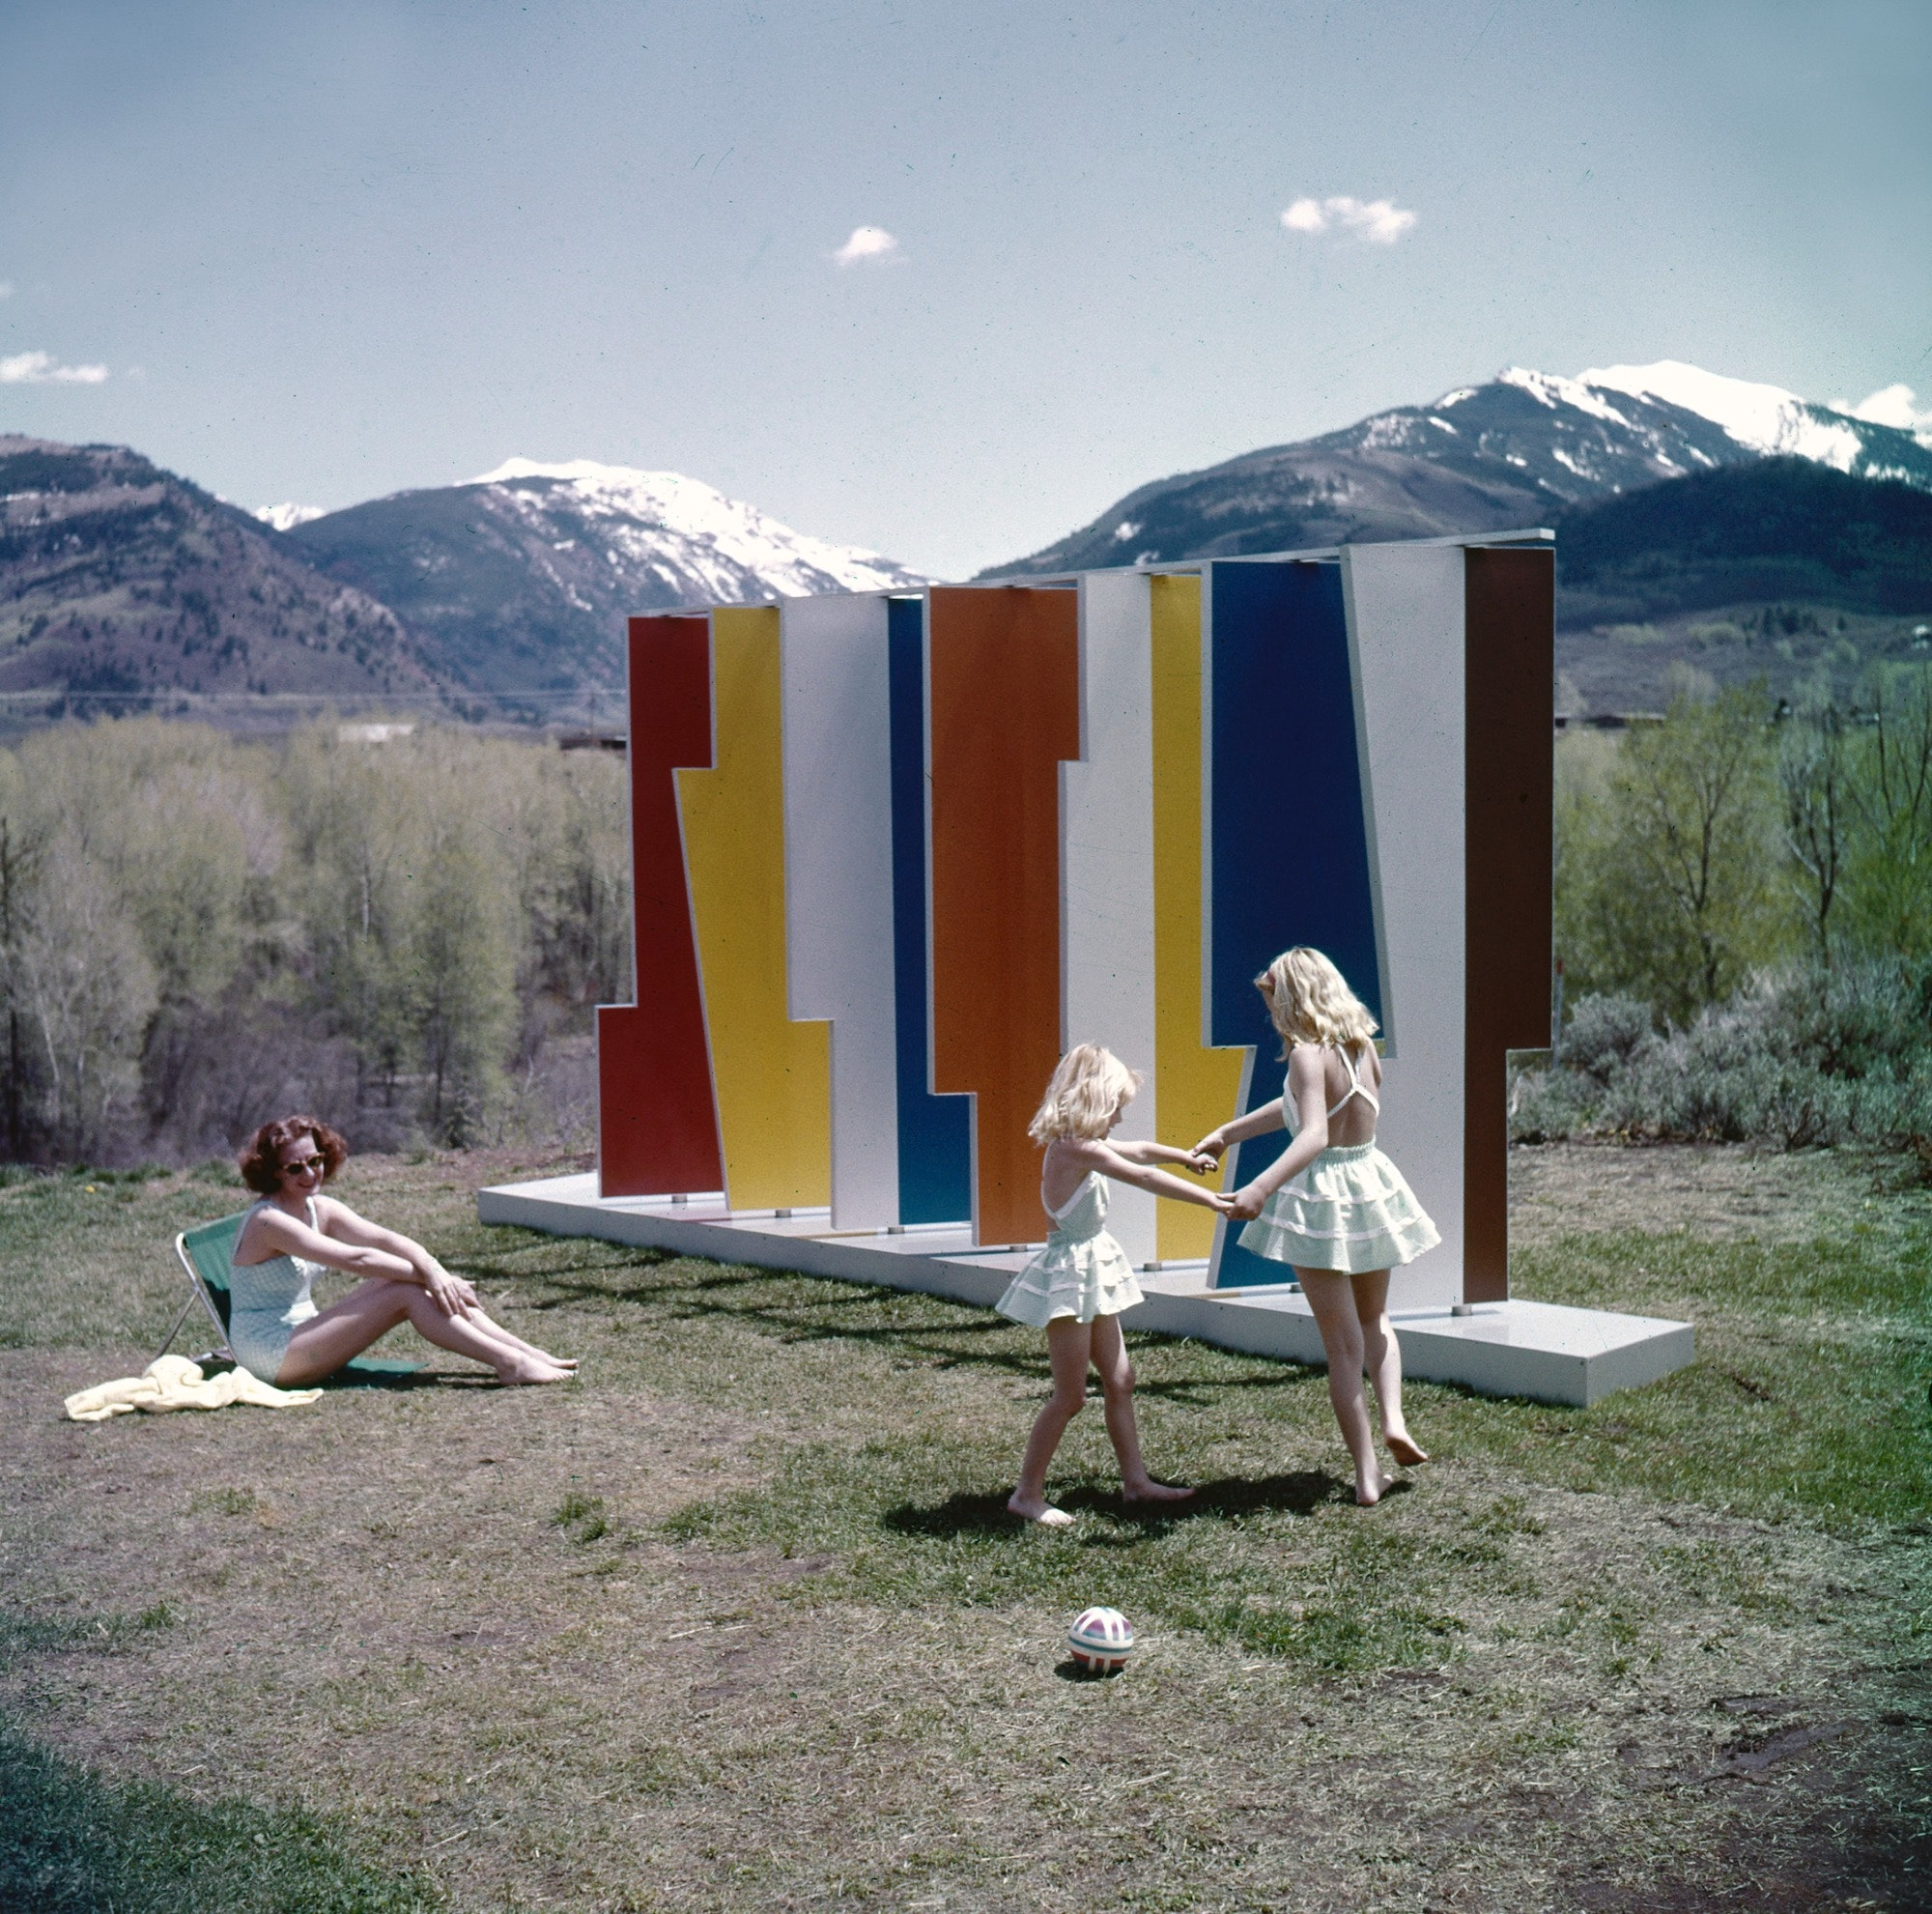 Herbert Bayer's Kaleidoscreen installed in Aspen, Colorado, as captured in a photograph from the 1950s.